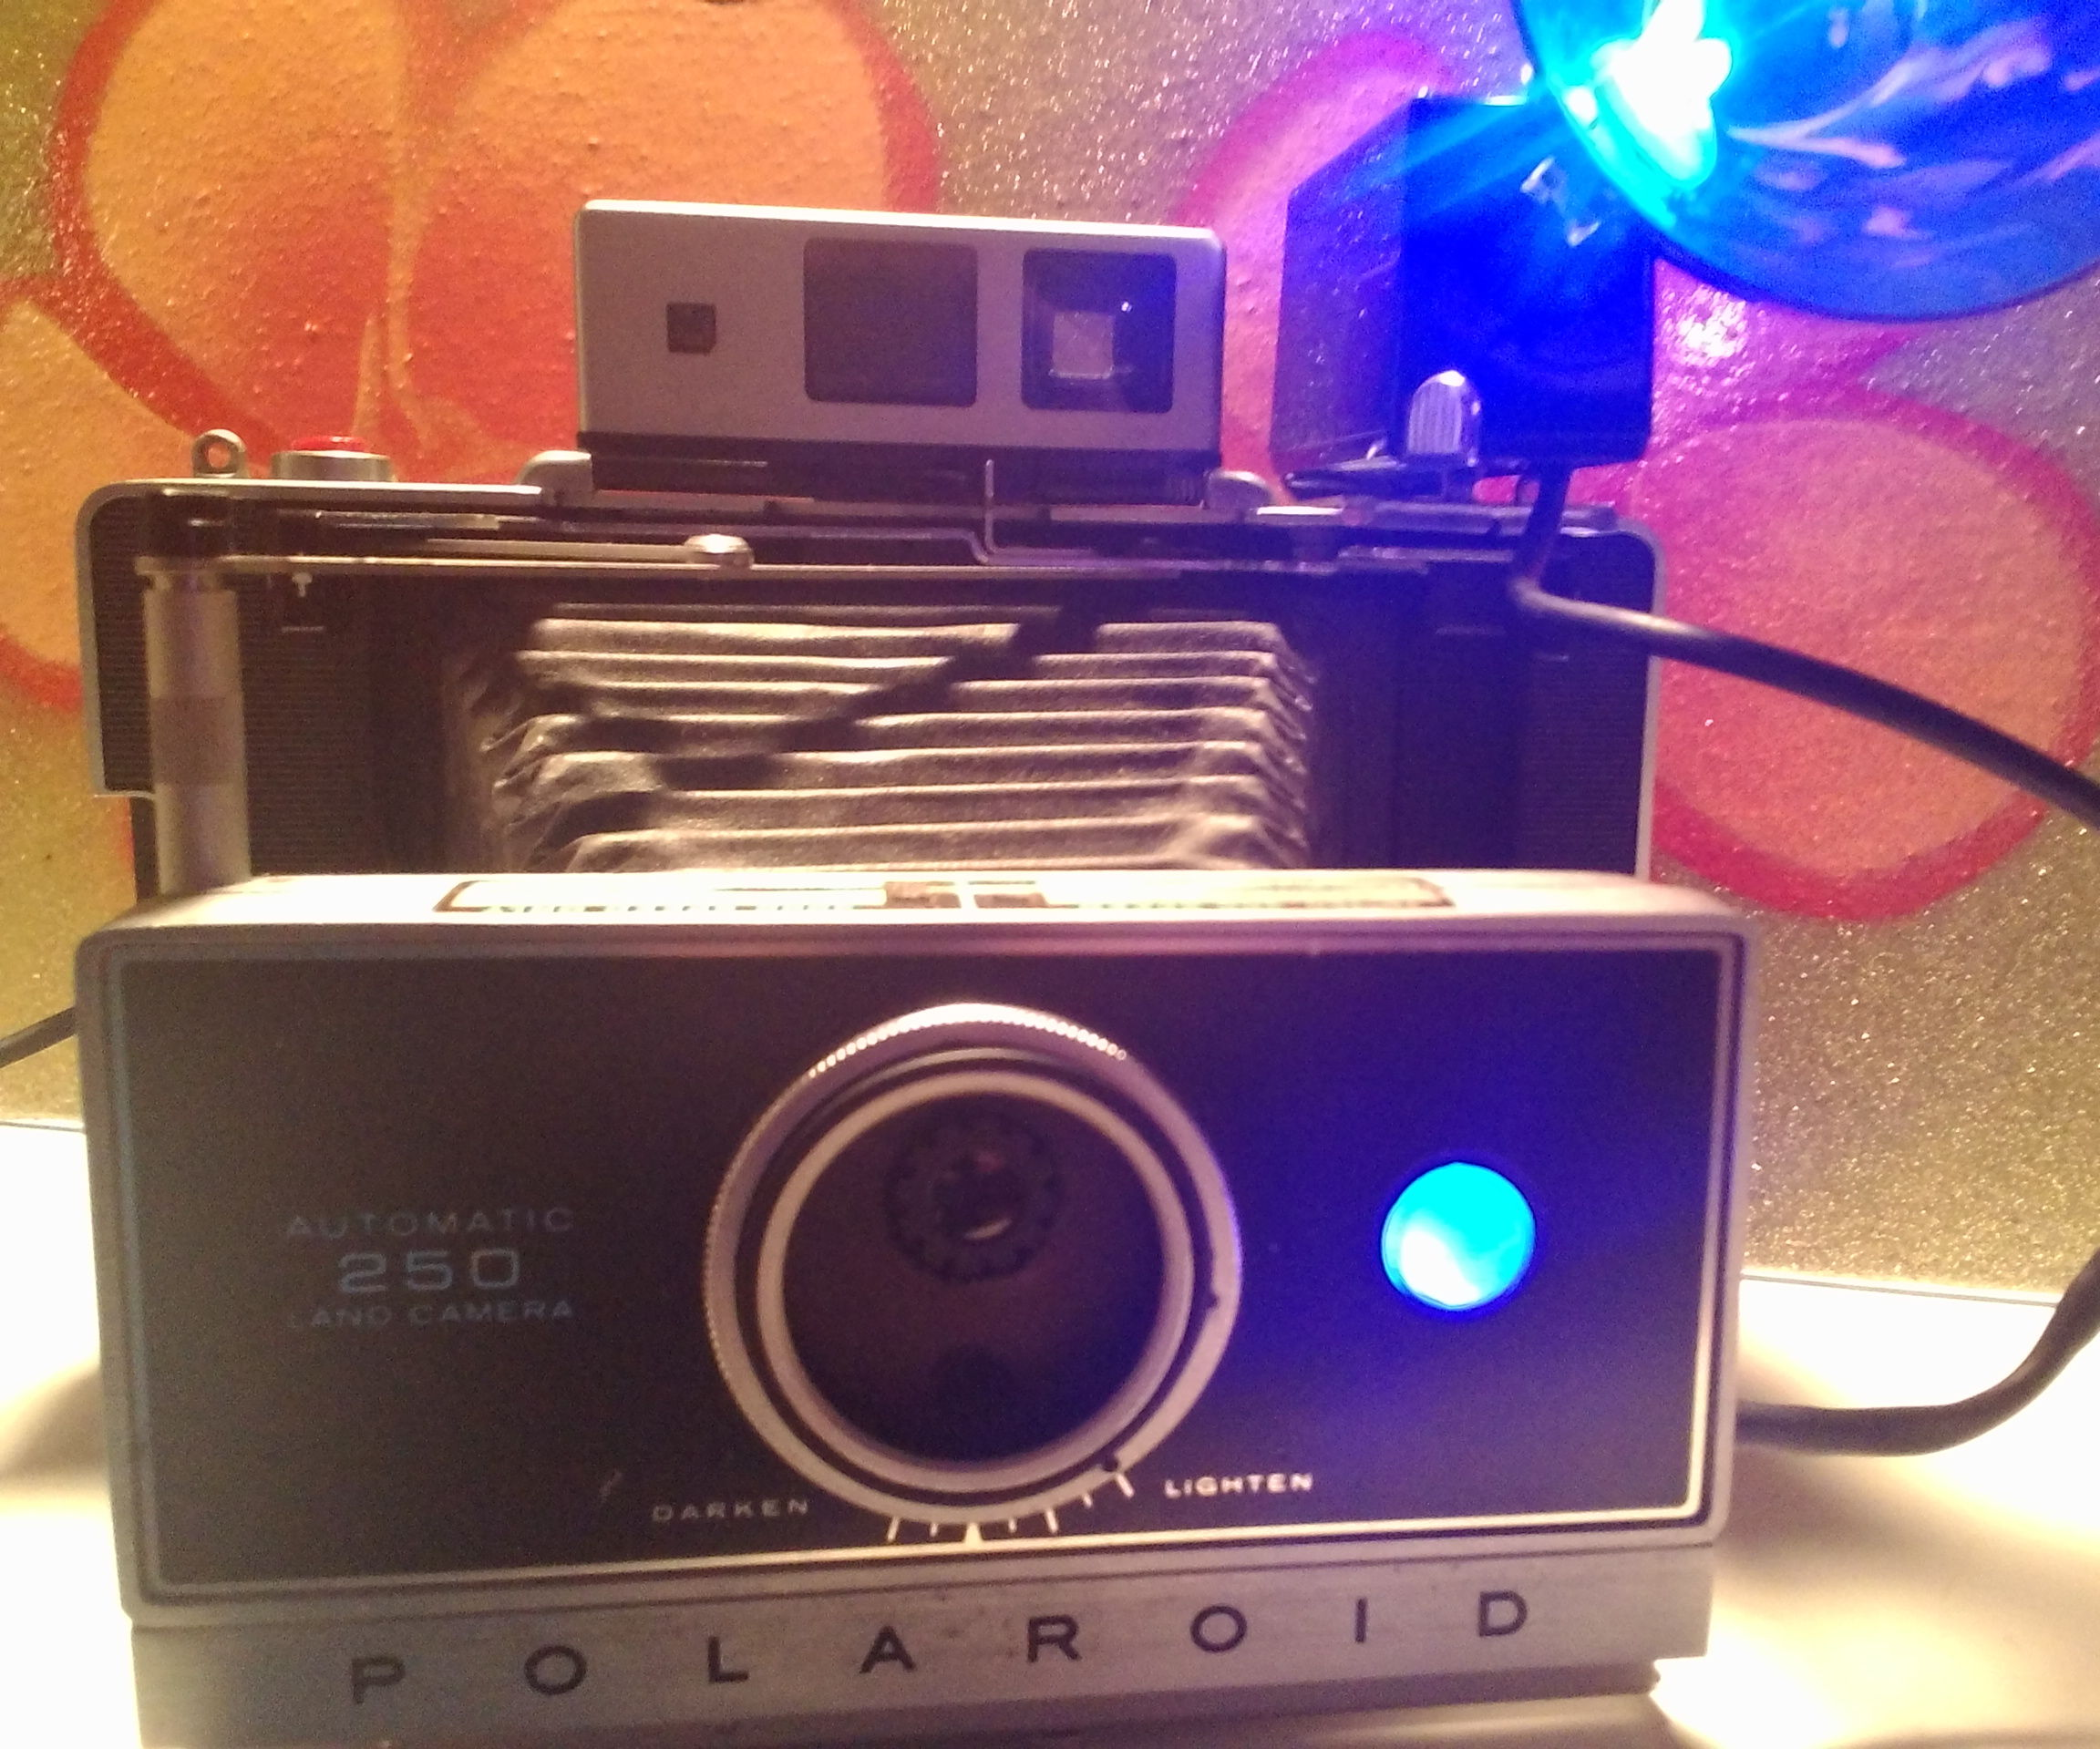 Let's turn a vintage camera into a decorative web cam and light!